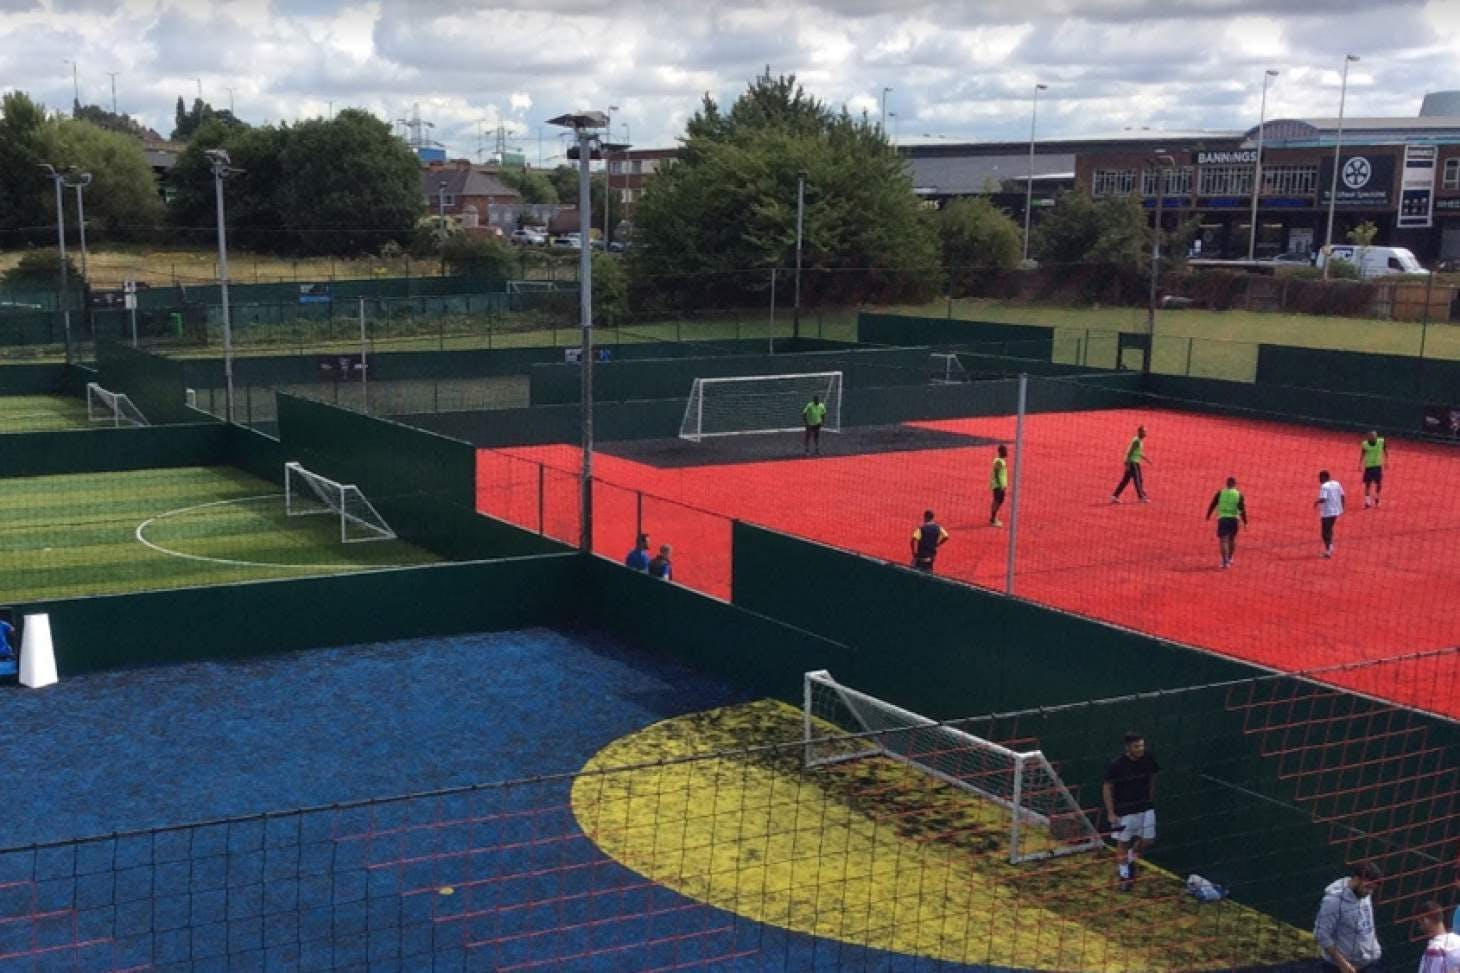 Powerleague Birmingham 7 a side | 3G Astroturf football pitch